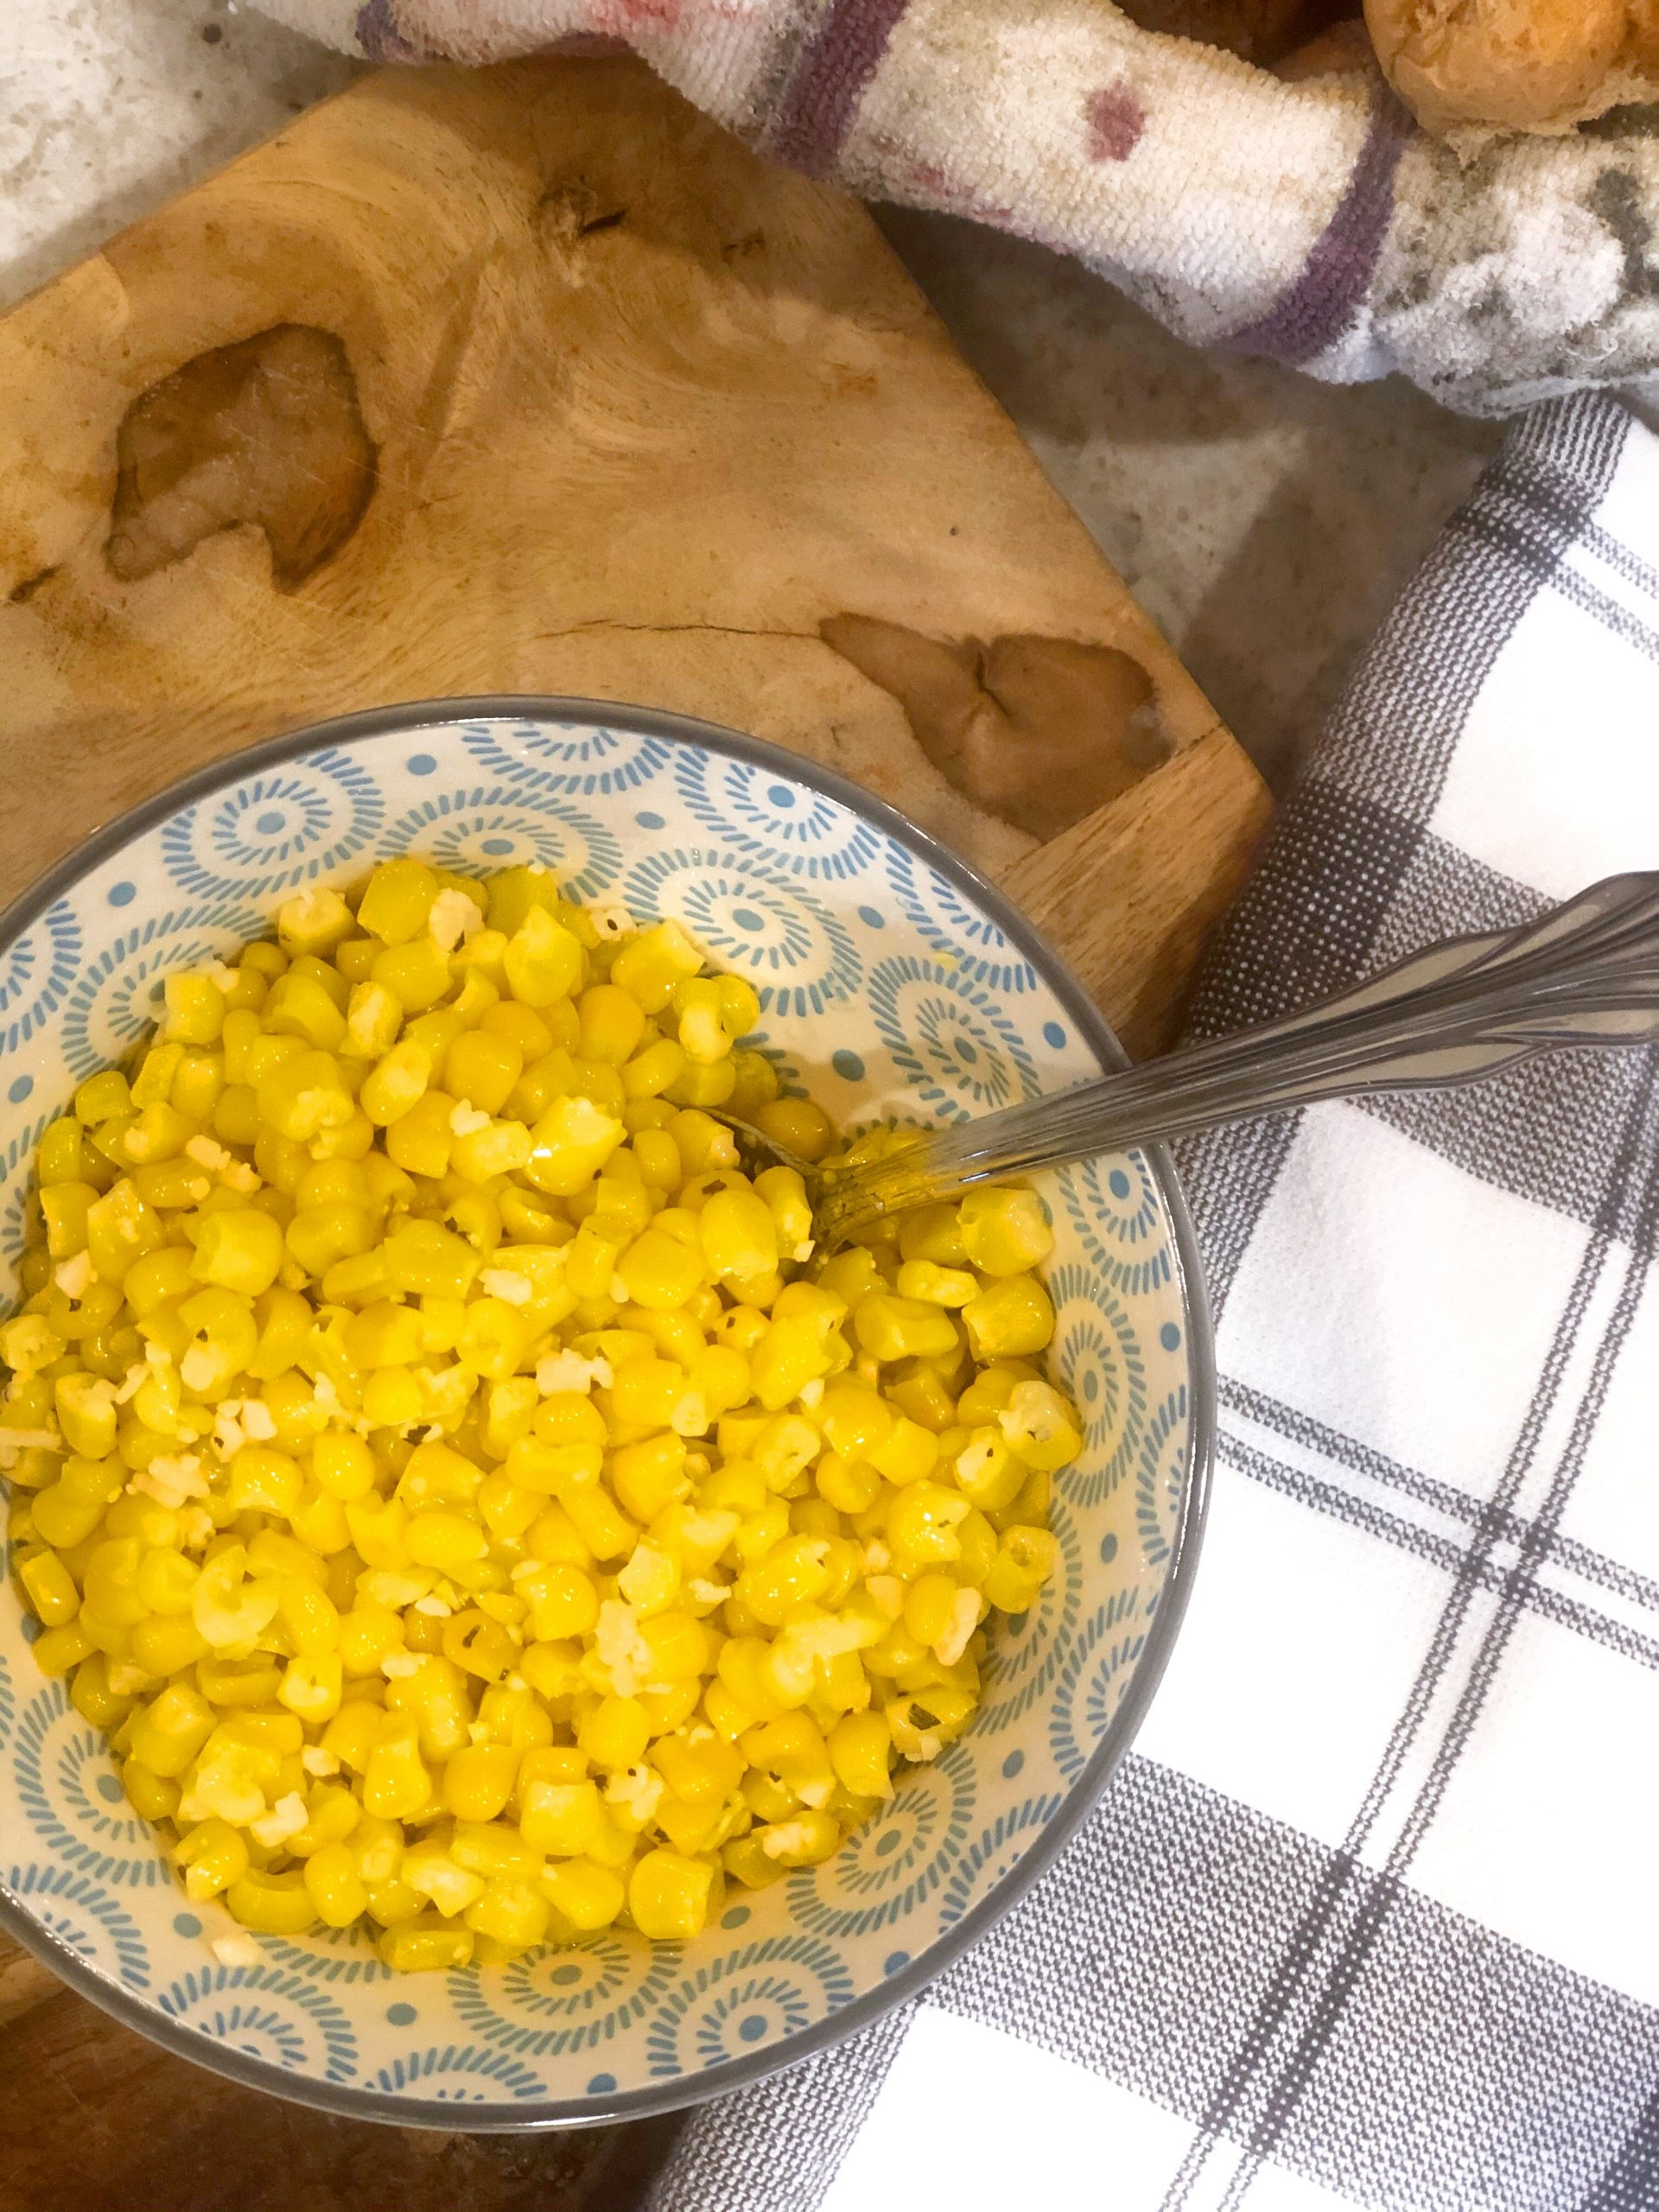 birdseye view of a bowl of corn on a wooden board next to a plaid towel